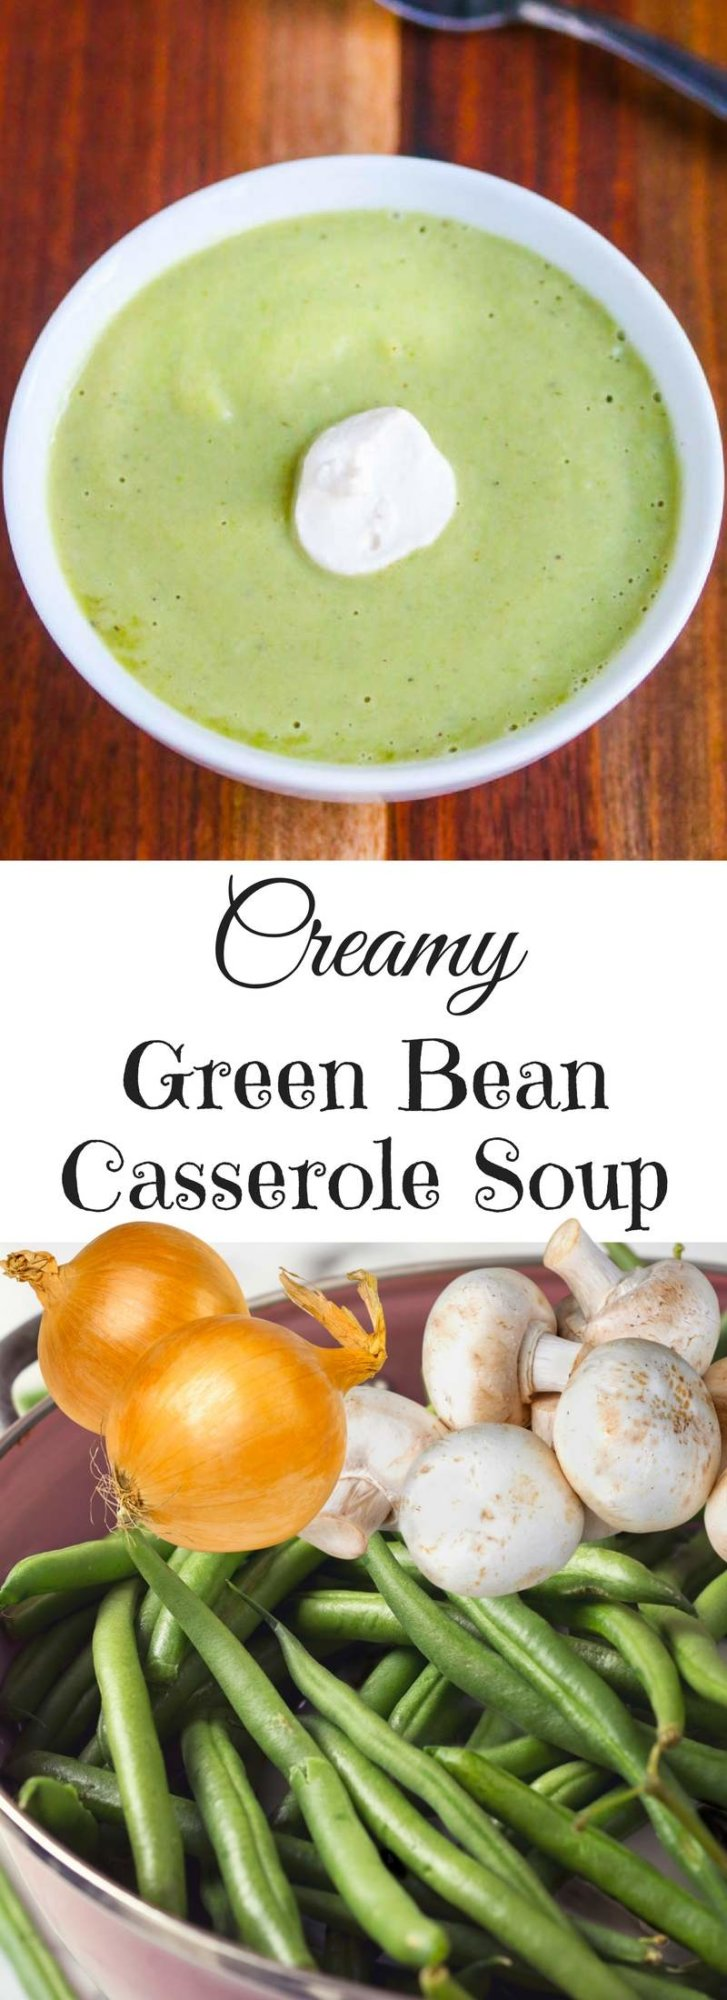 Creamy Green Bean Casserole Soup - all the flavors of green bean casserole in this healthy and delicious soup!